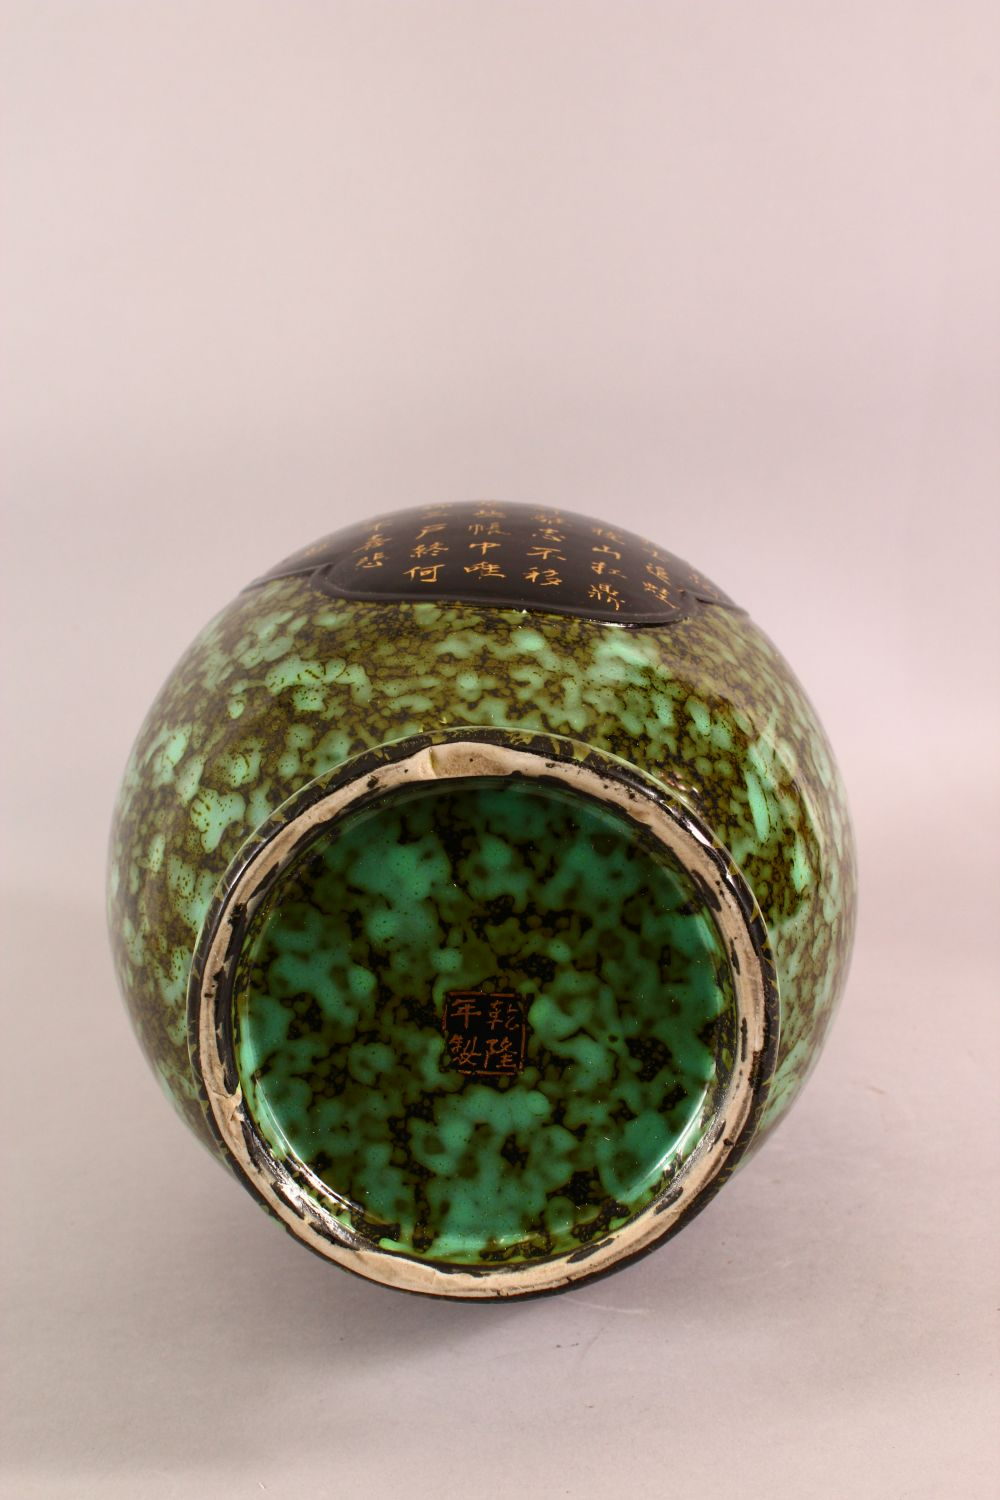 A CHINESE UNUSUAL GREEN GROUND VASE, the body with panels of calligraphic script, the base with four - Image 7 of 8